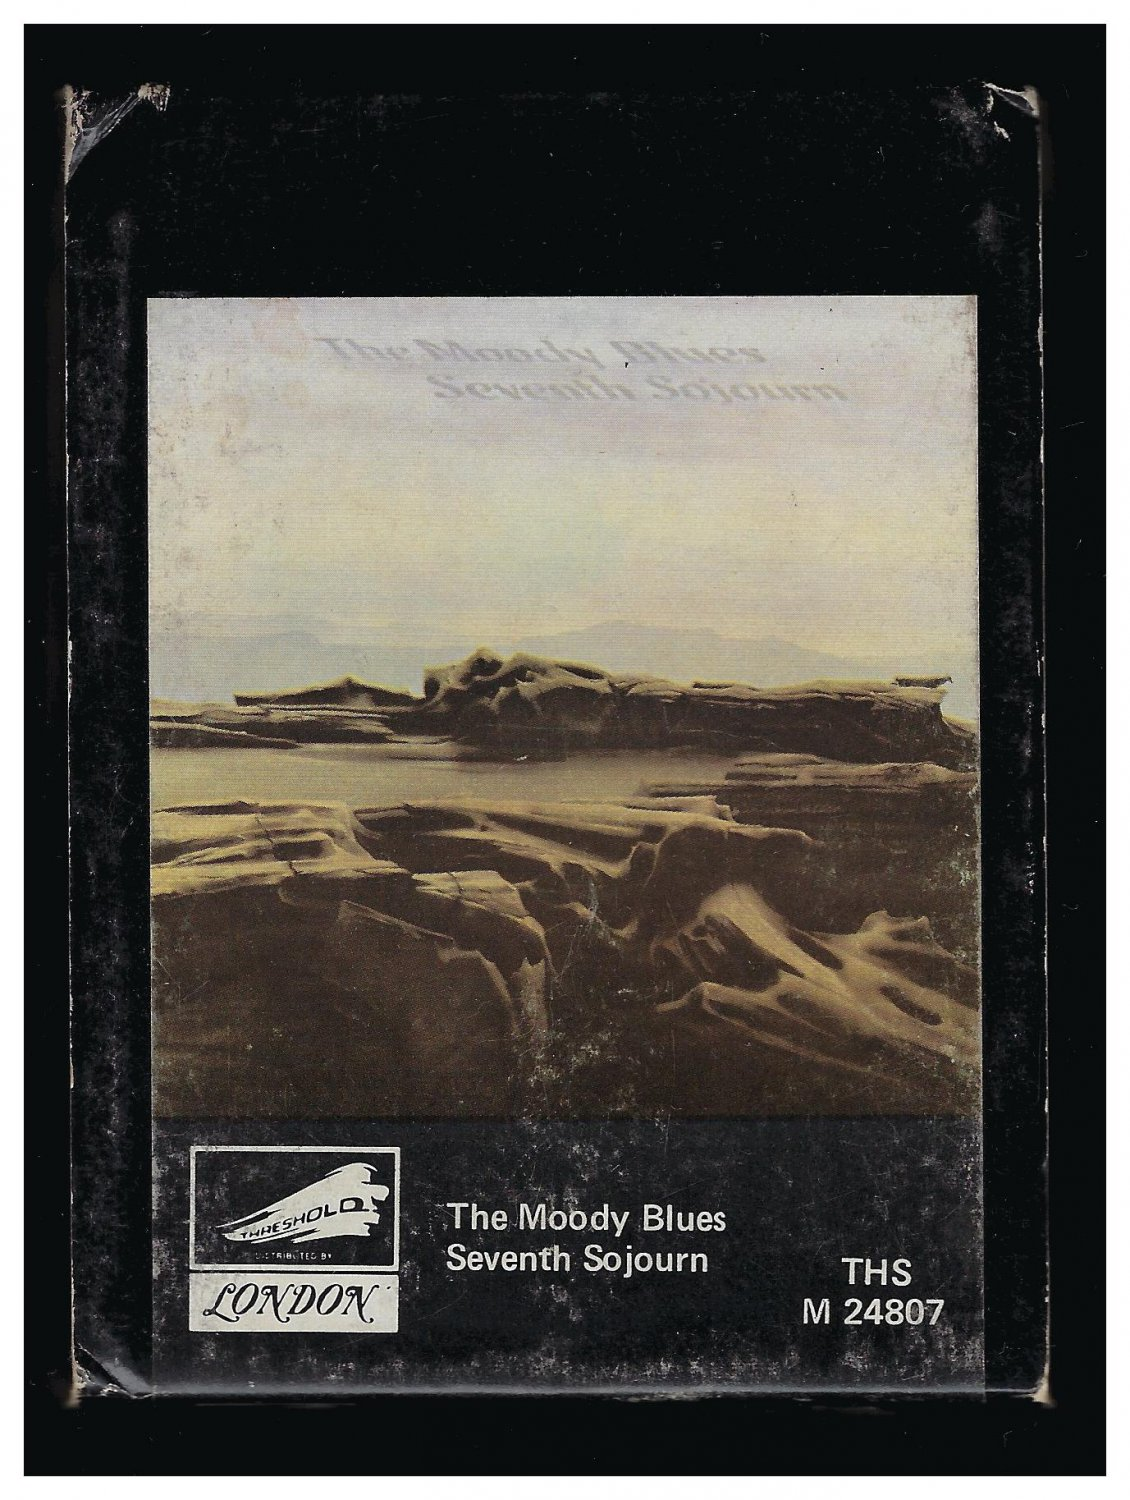 The Moody Blues - Seventh Sojourn 1972 AMPEX THRESHOLD A23 8-TRACK TAPE